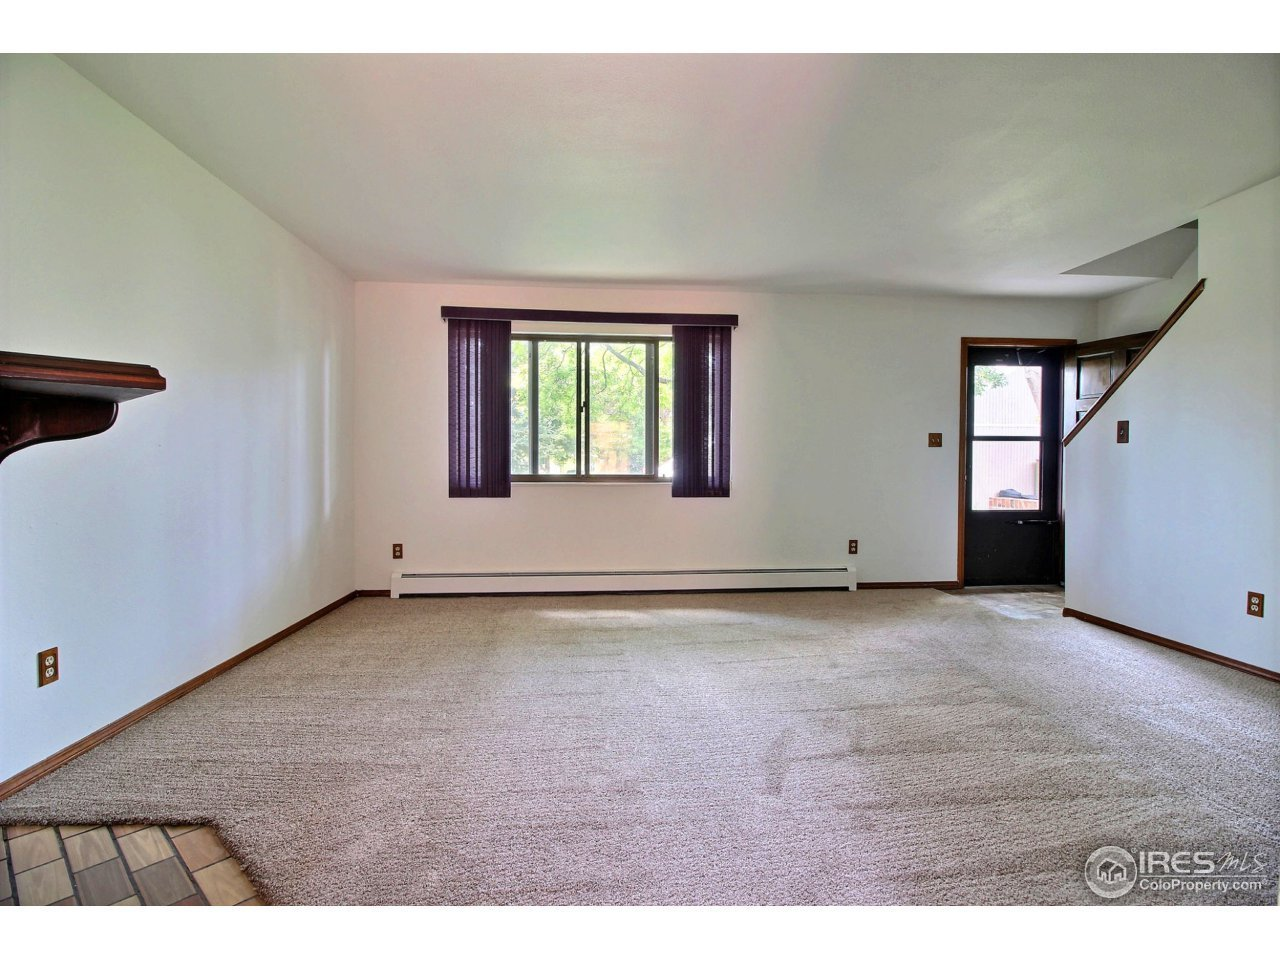 2707 19th st dr #2, greeley, co 80634   mls# 826080   redfin